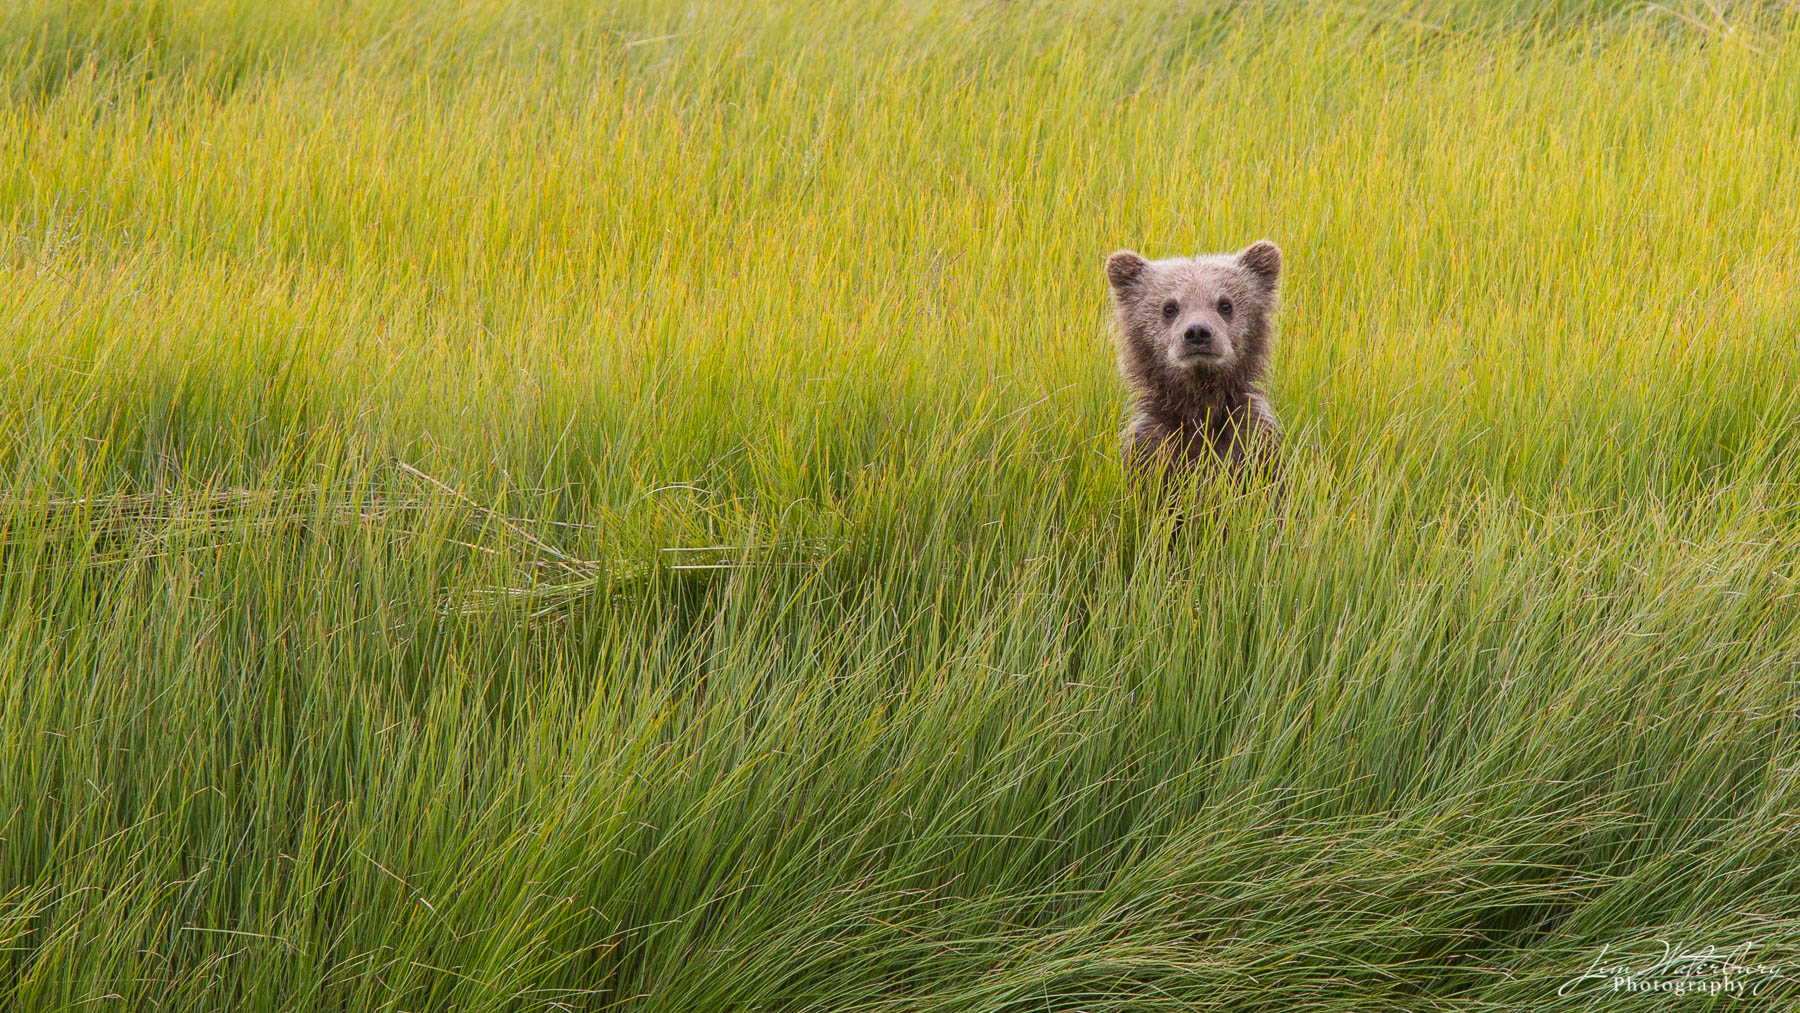 A lone young brown bear looks up through the tall grass in search of his mother who has crossed the river ahead of him.